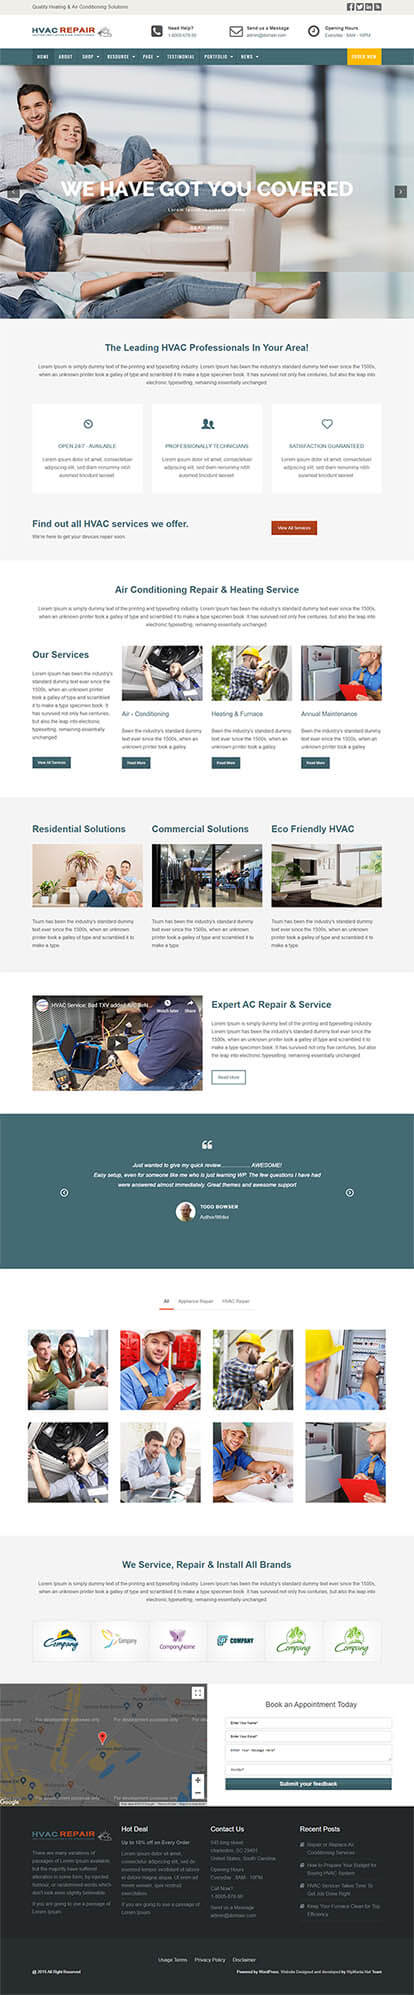 HVAC Repair WORDPRESS THEME Full Demo